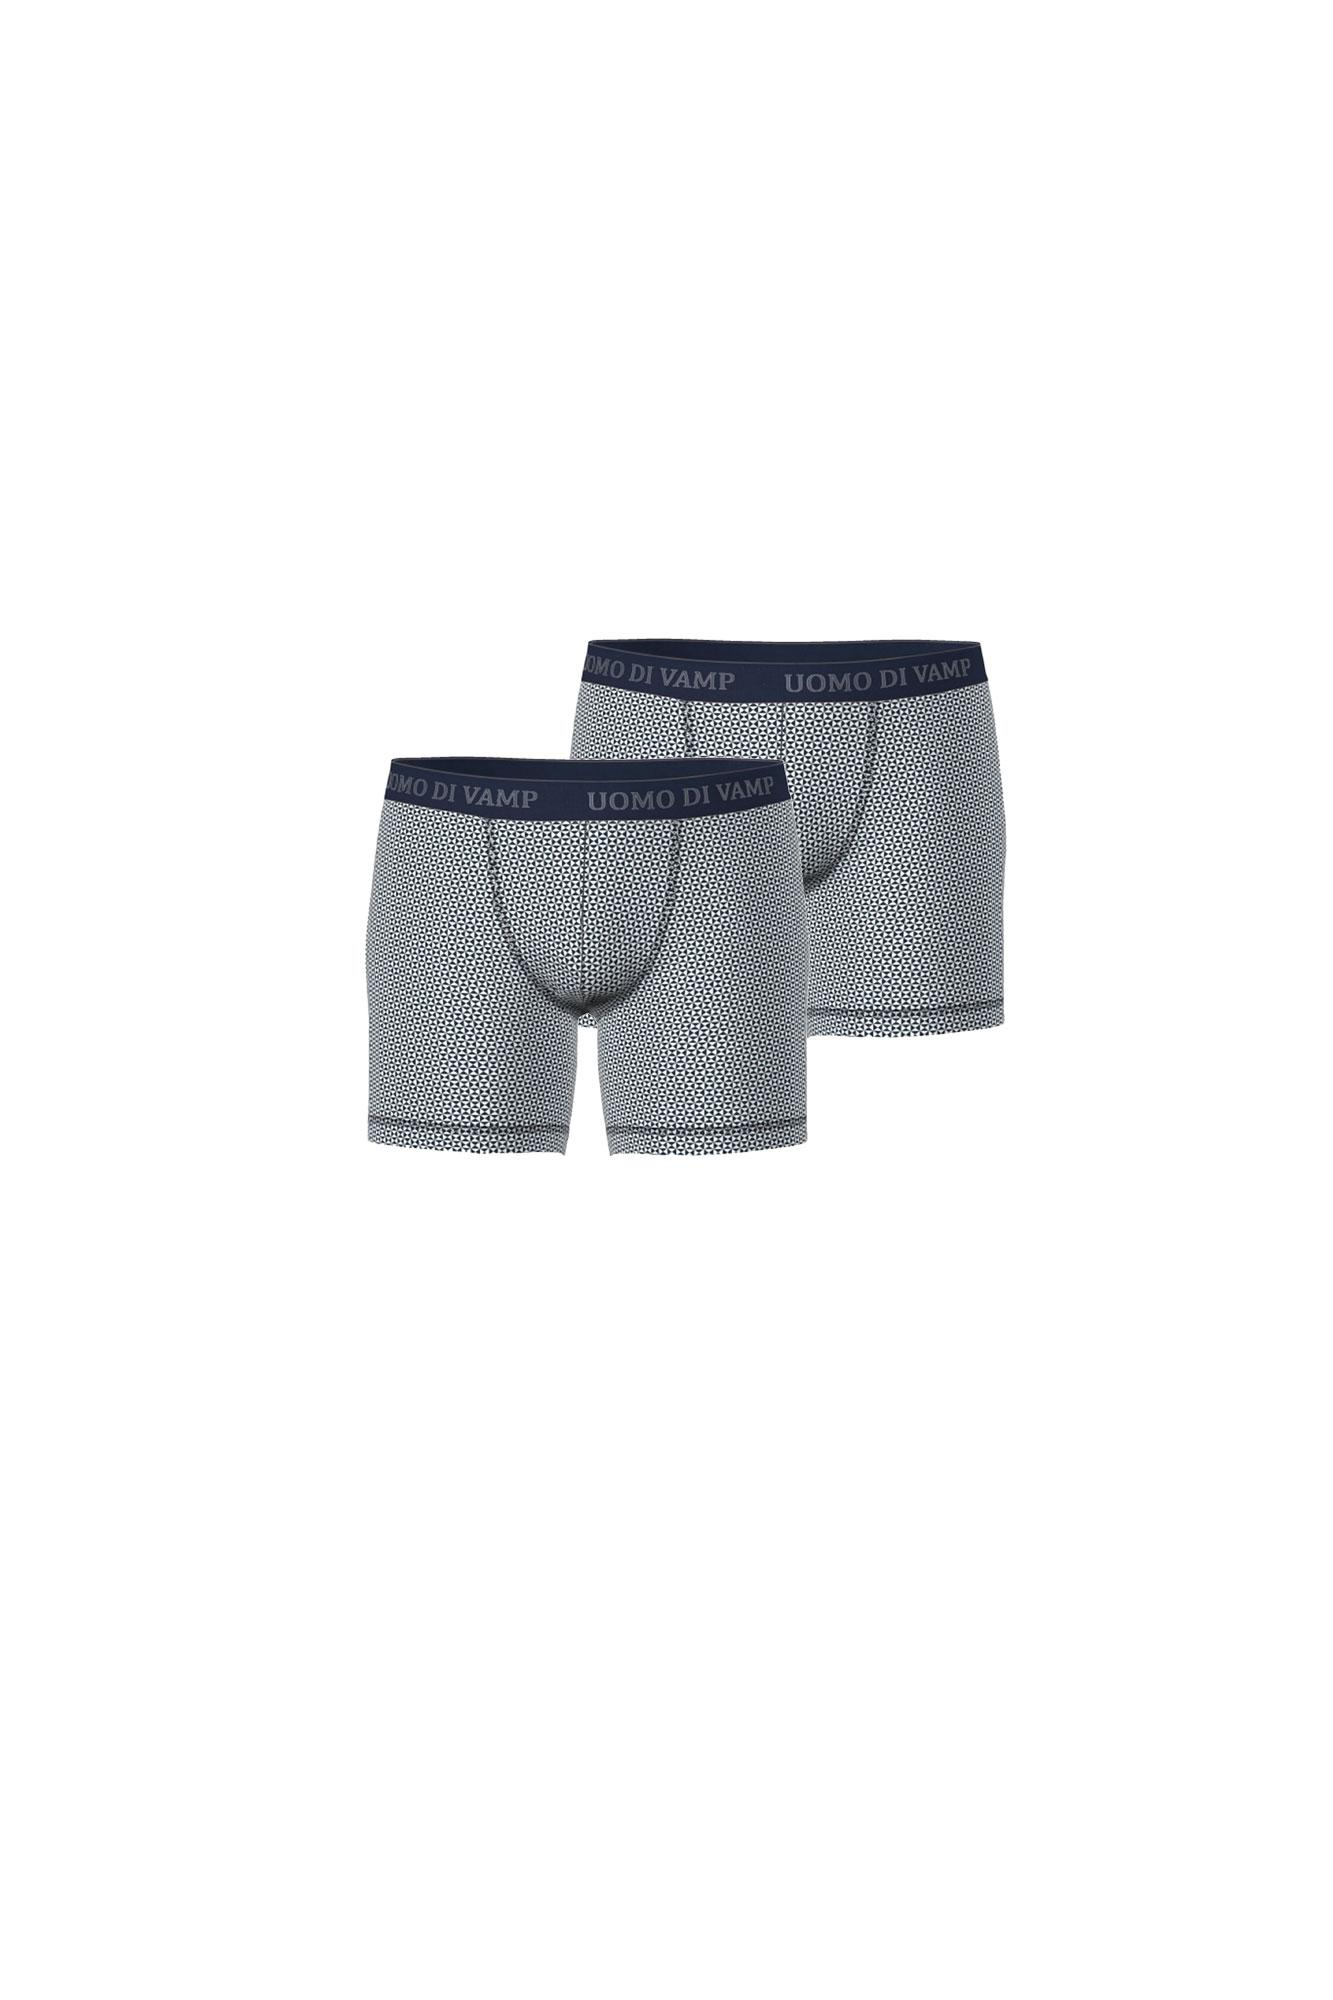 Men's 2 Pack Boxer Slips